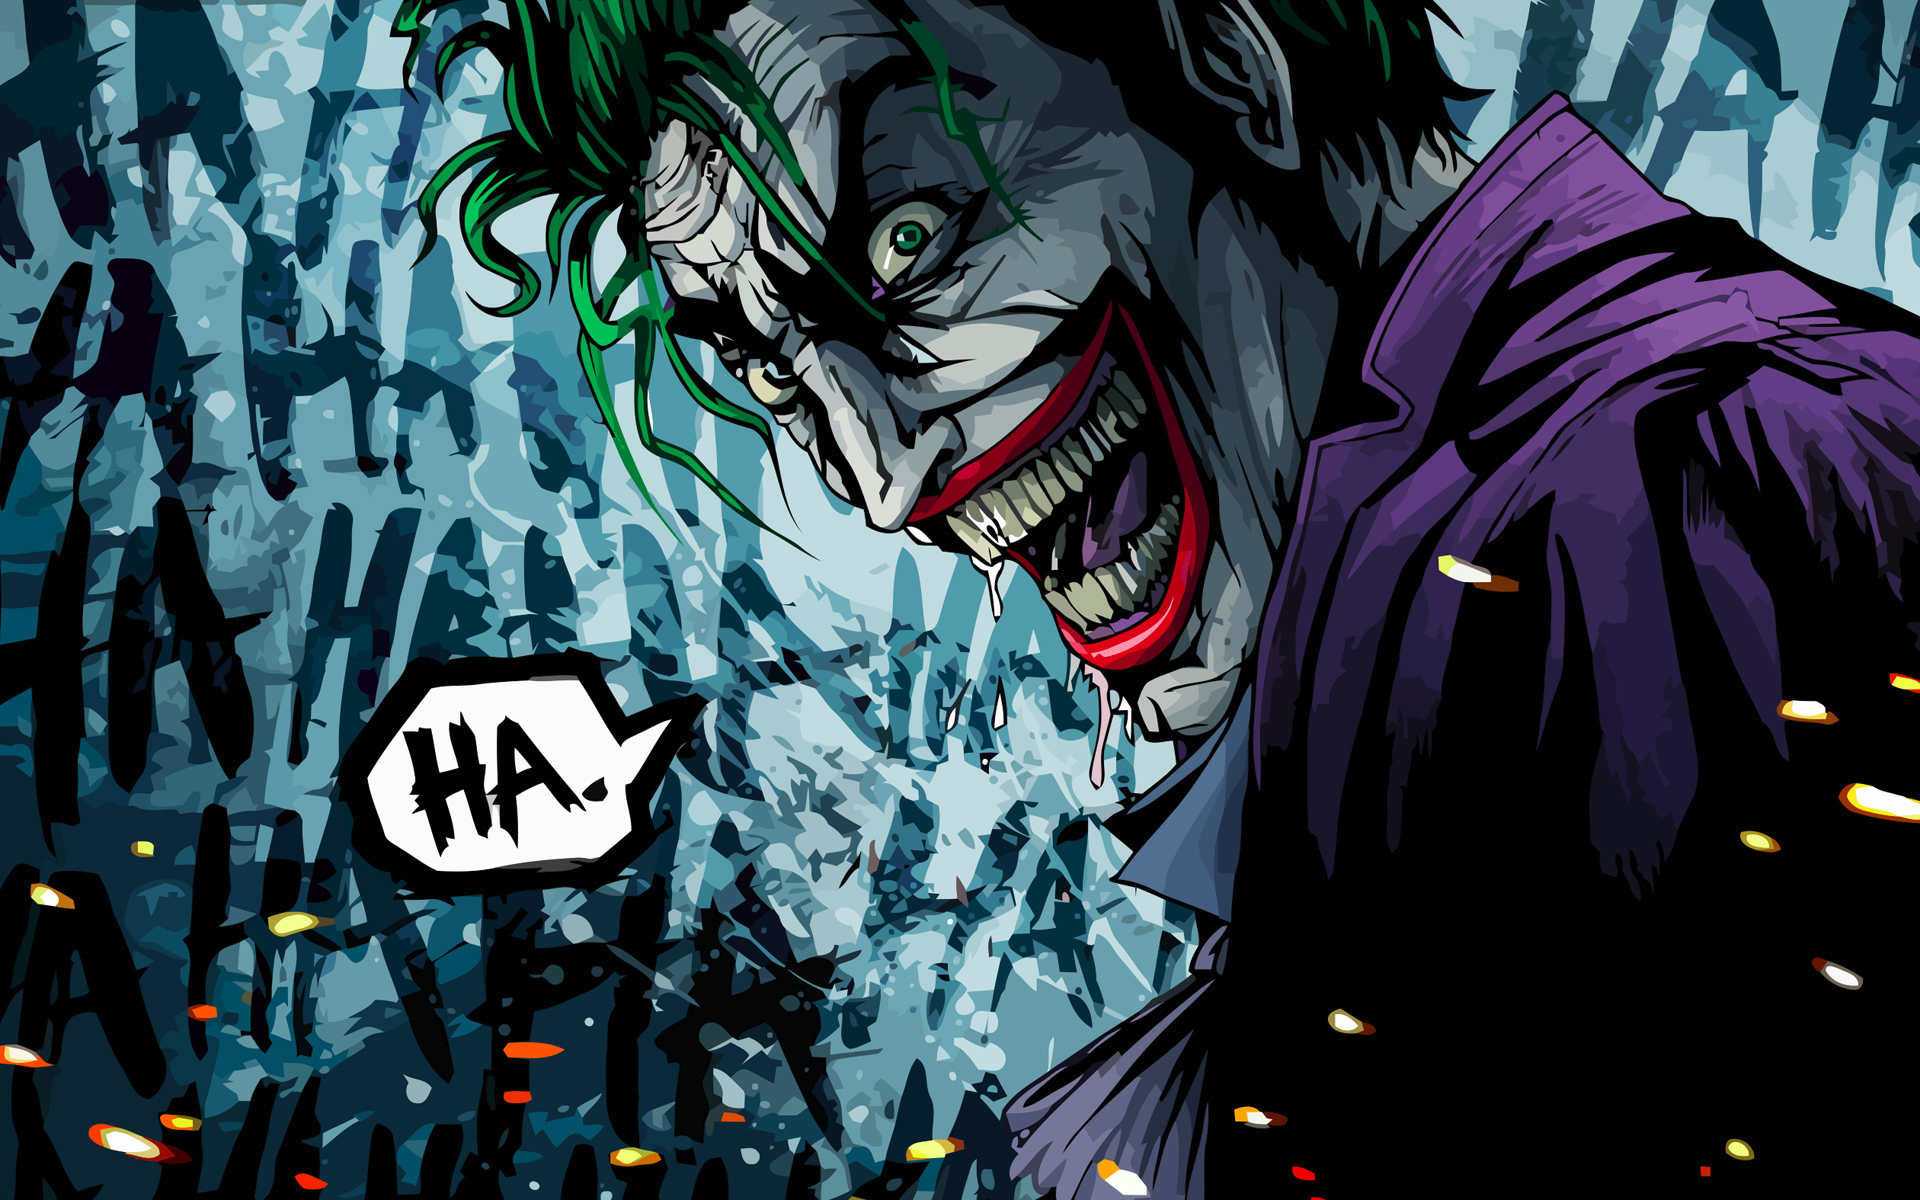 Joker Computer Wallpapers Desktop Backgrounds 1920x1200 1920x1200